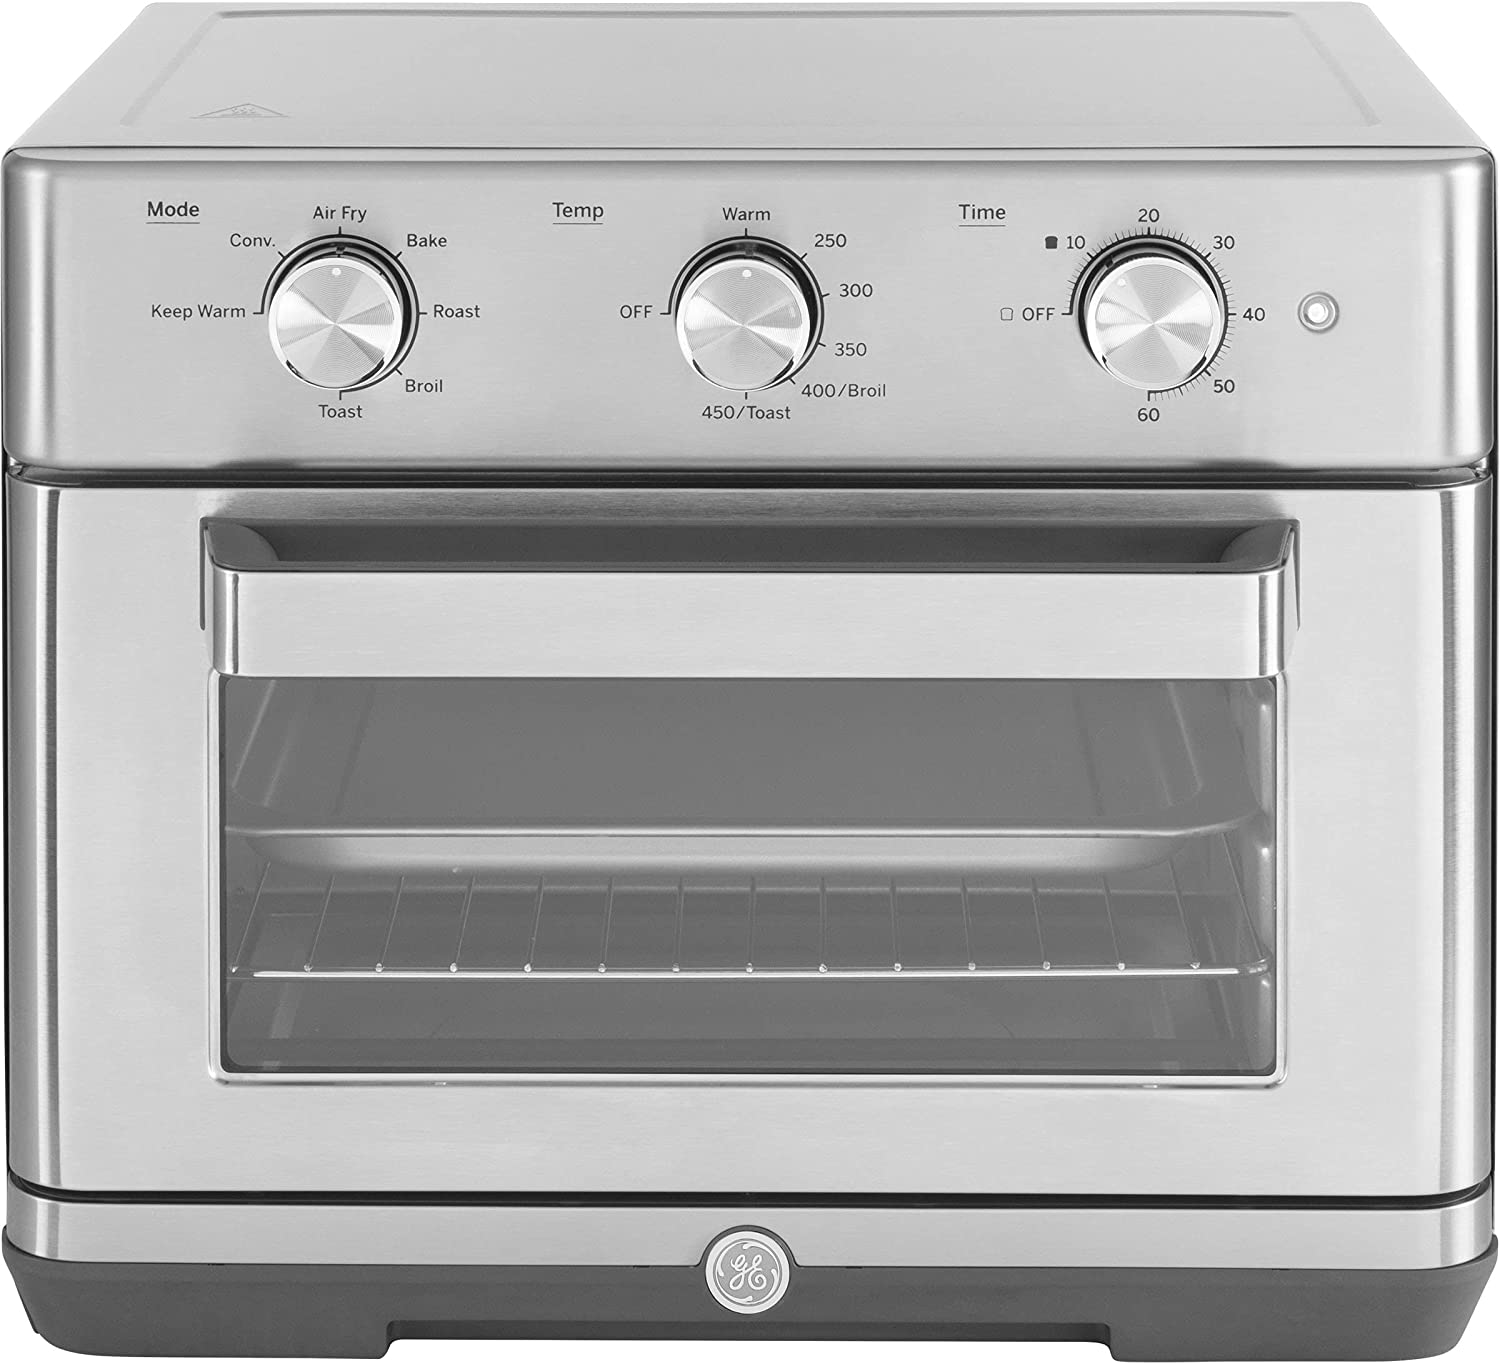 GE 7-in-1 Toaster Mechanical Air Fry Oven, Large Capacity, Stainless Steel